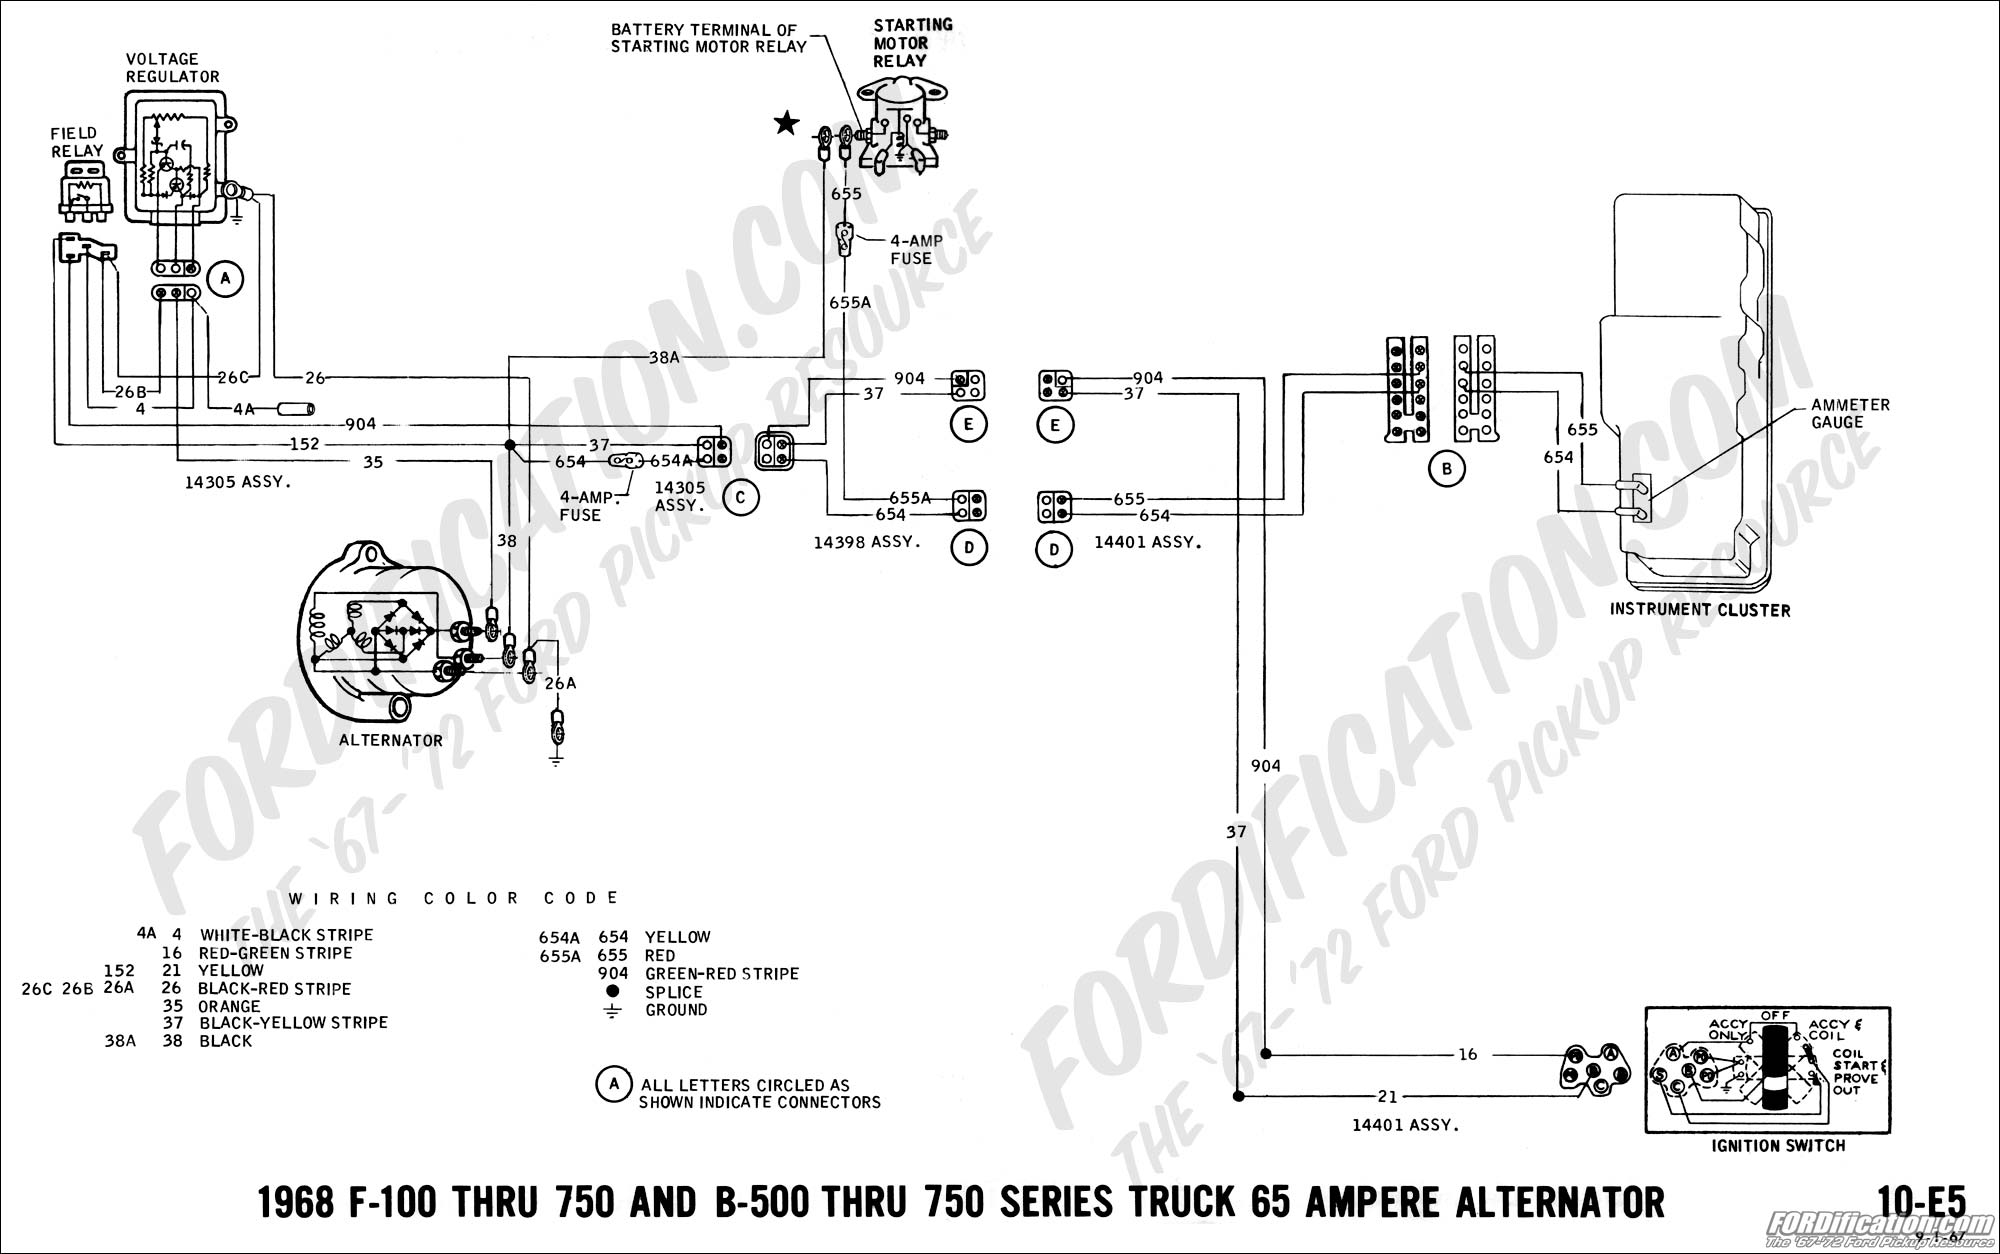 68 07 ford truck technical drawings and schematics section h wiring 1971 ford f100 ignition switch wiring diagram at gsmx.co